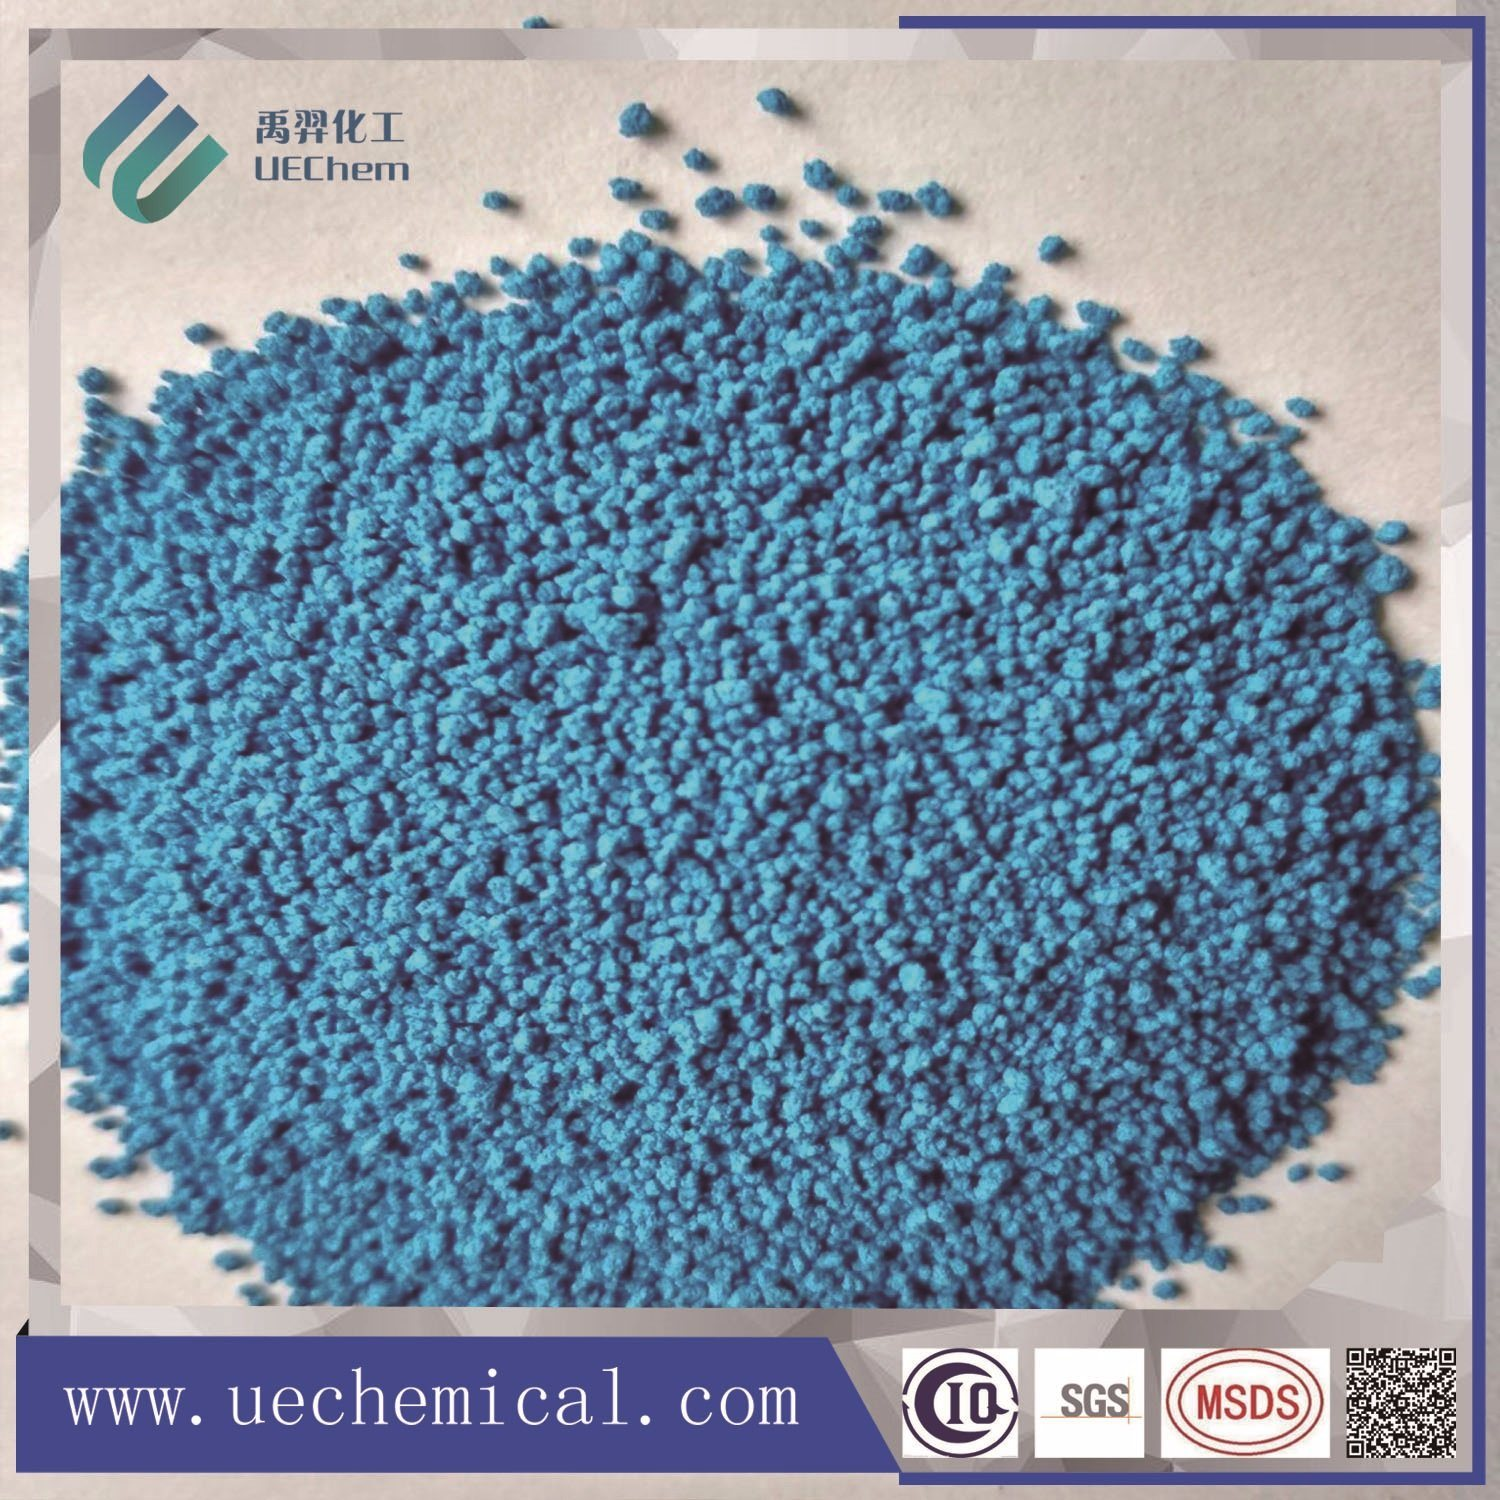 Sodium Sulphate Color Speckles for Detergent Powder & Washing Powder